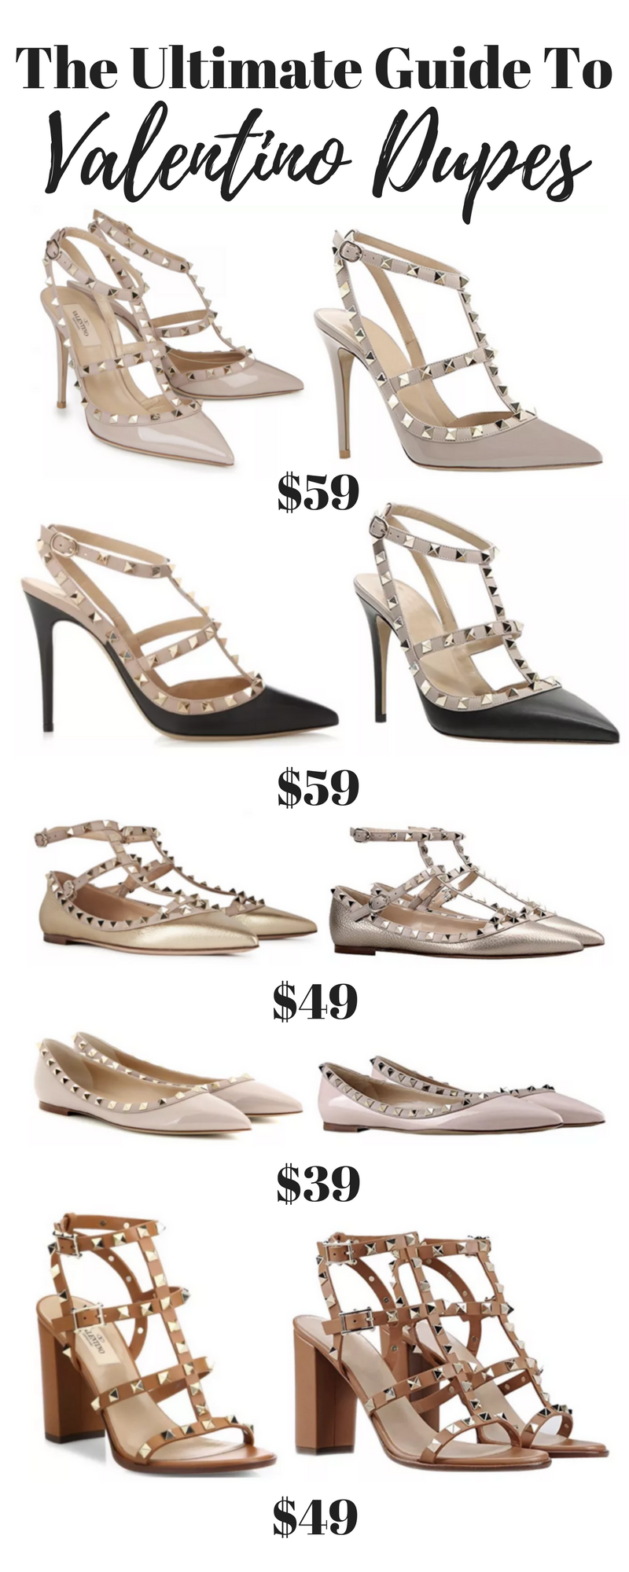 c5bfa7b3ec29 The Ultimate Guide To Valentino Rockstud Dupes - Get The luxury Look For  Less!